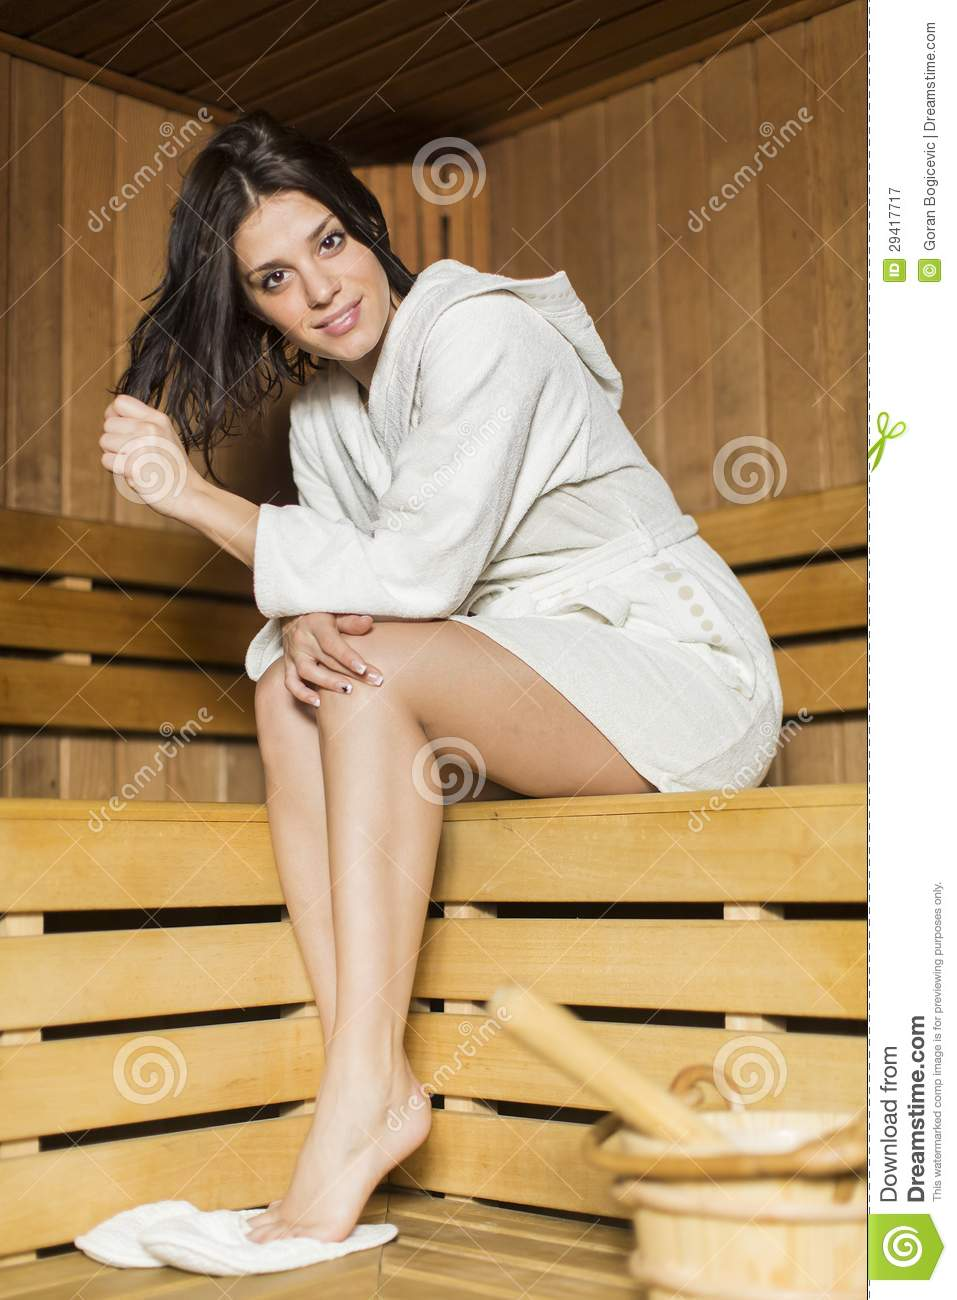 junge frau in der sauna lizenzfreie stockfotografie bild 29417717. Black Bedroom Furniture Sets. Home Design Ideas